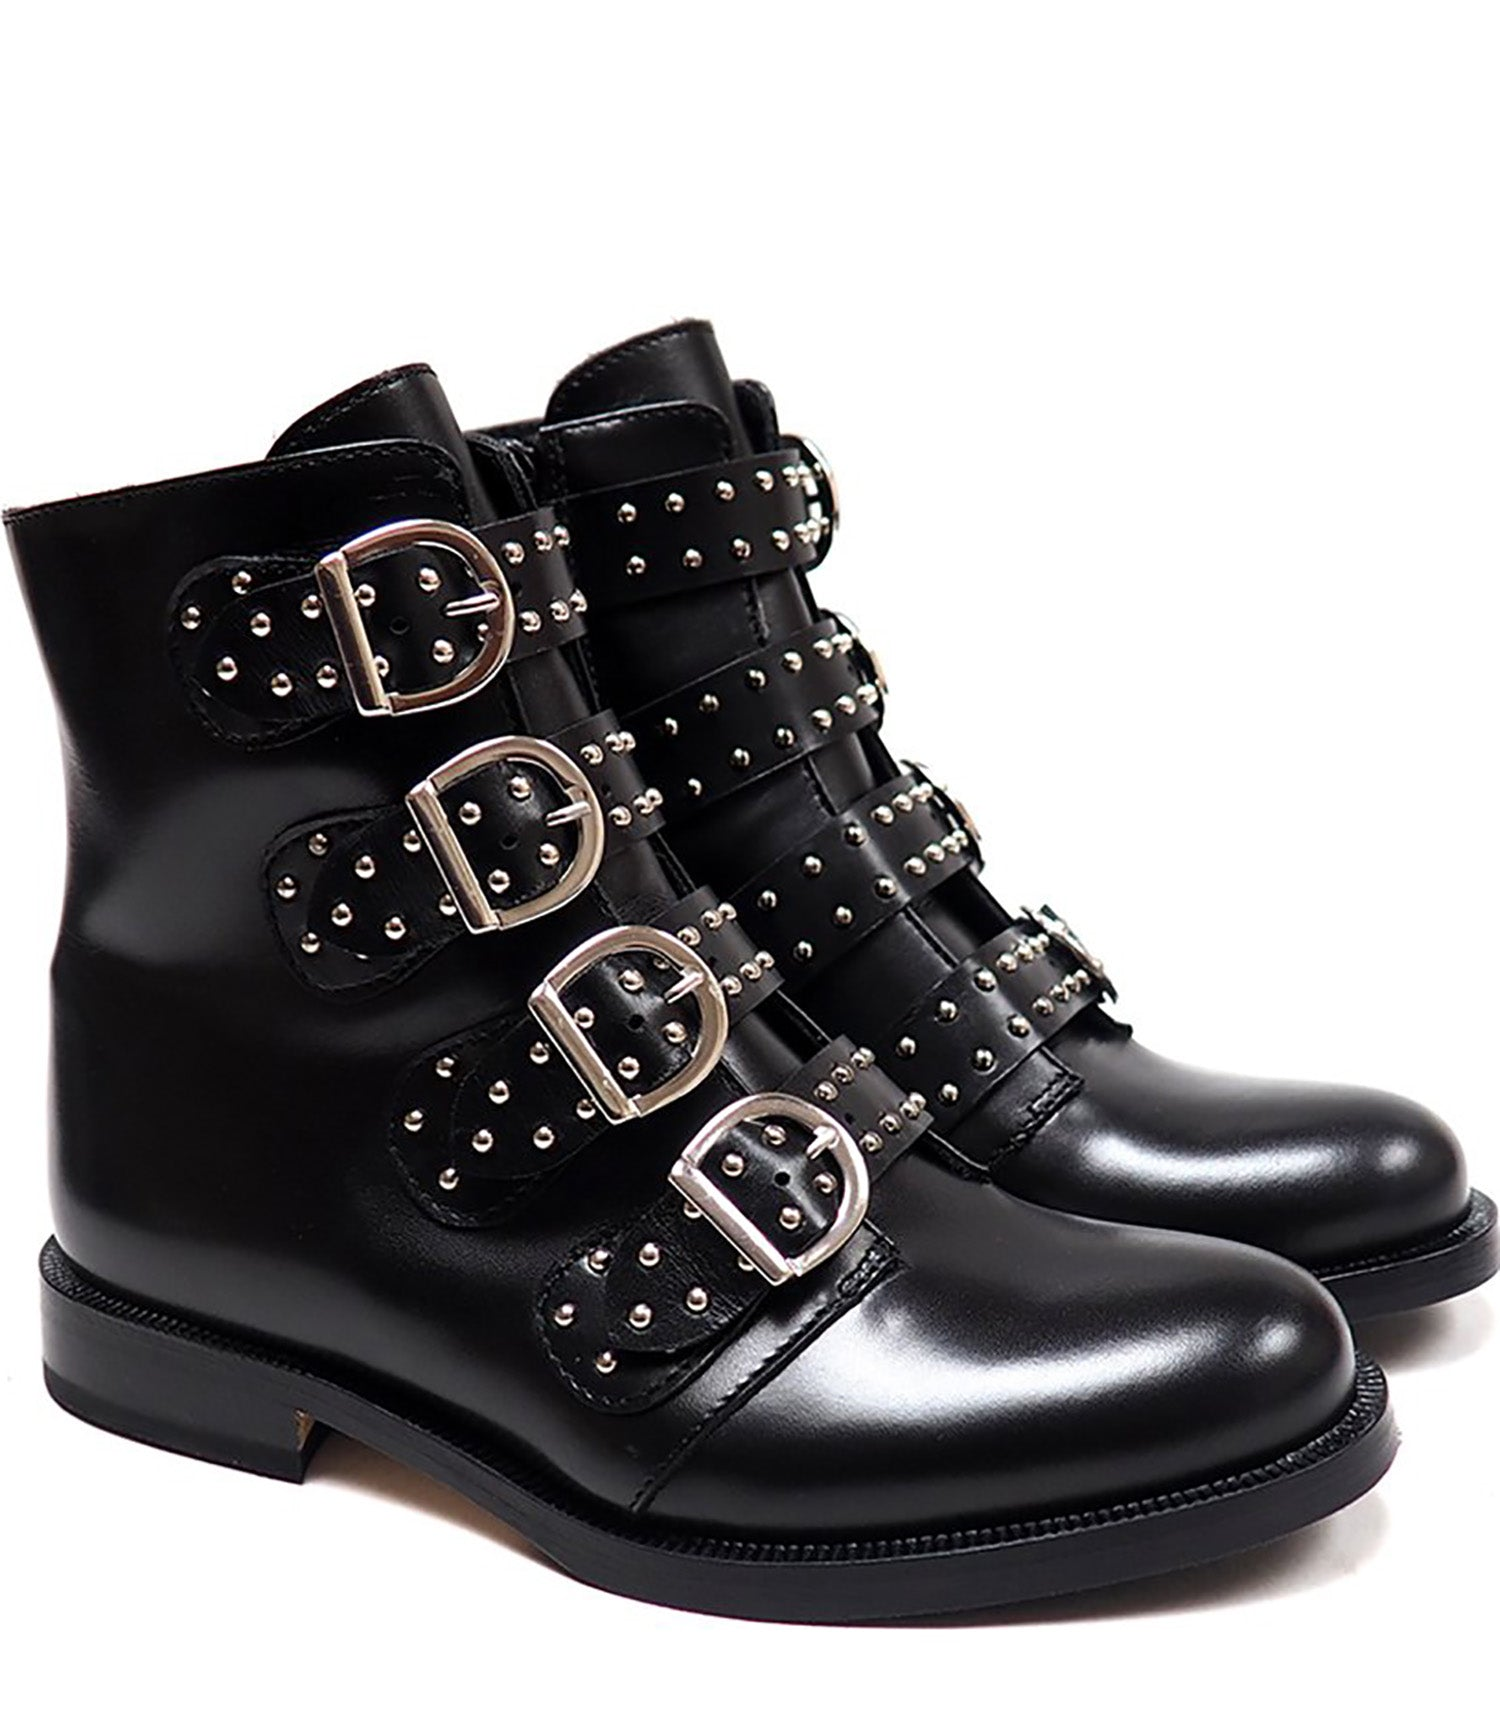 Buckles in Black Calf Leather